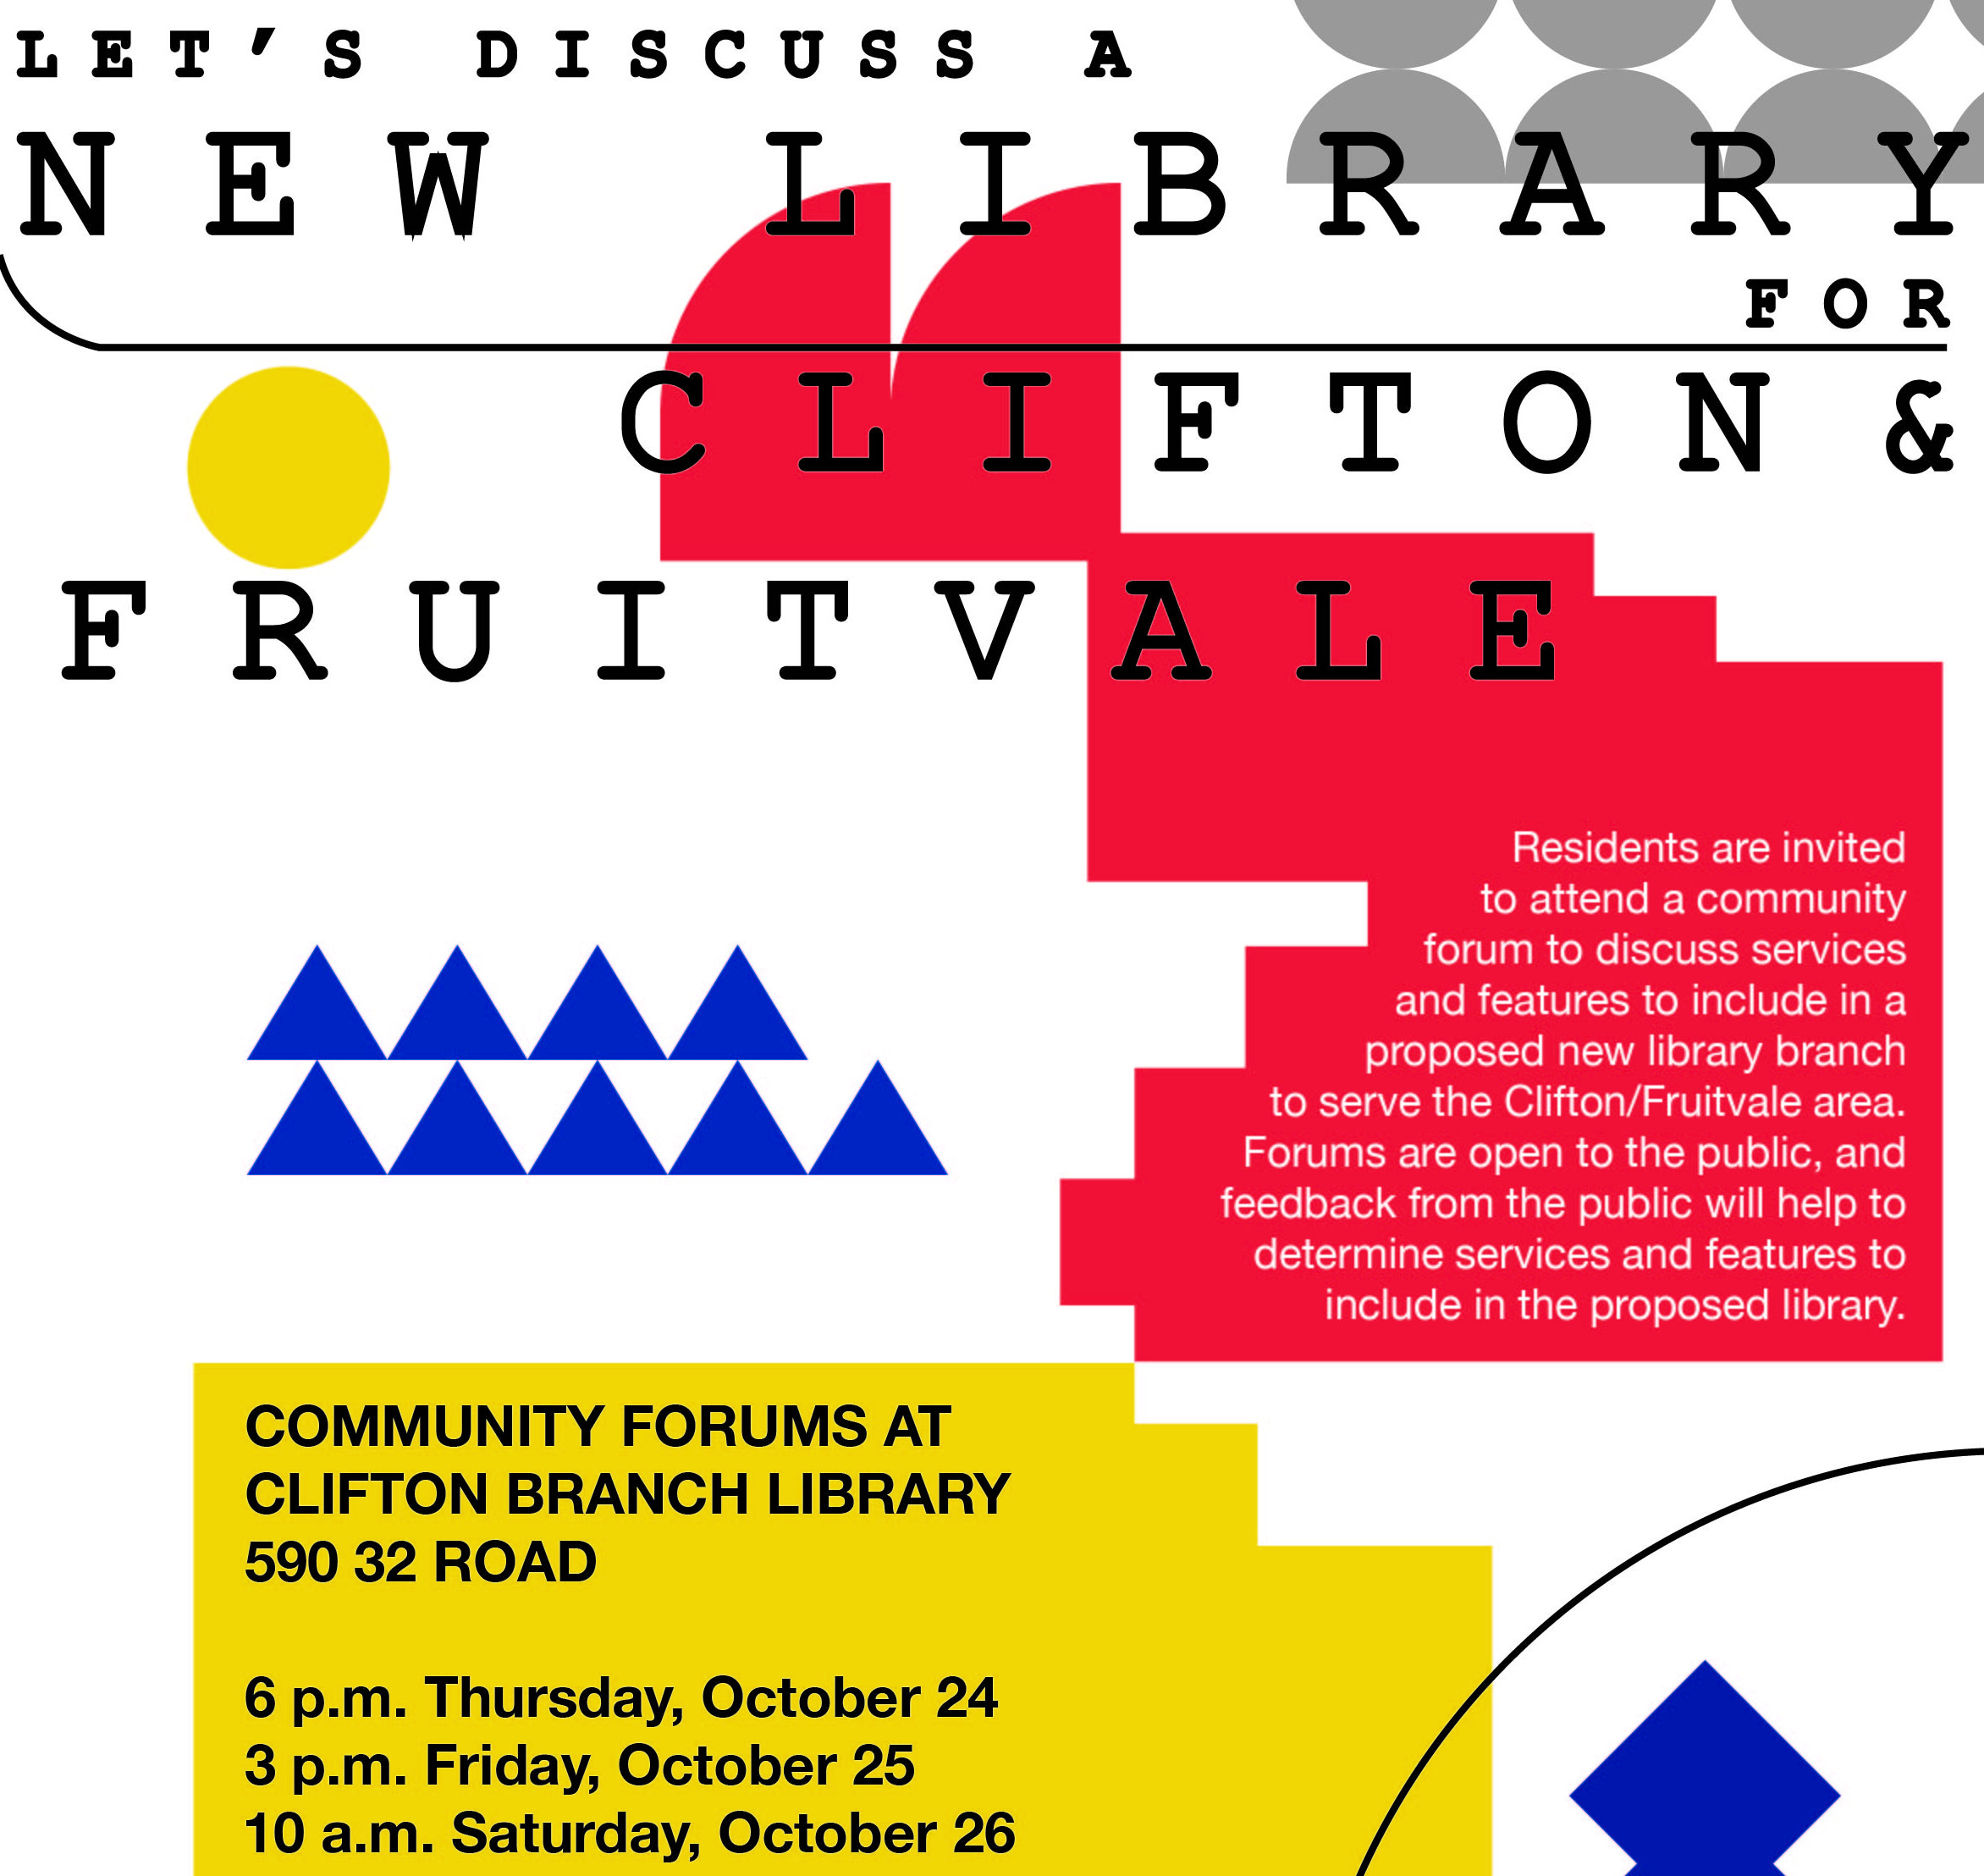 Detail from flier promoting community forums